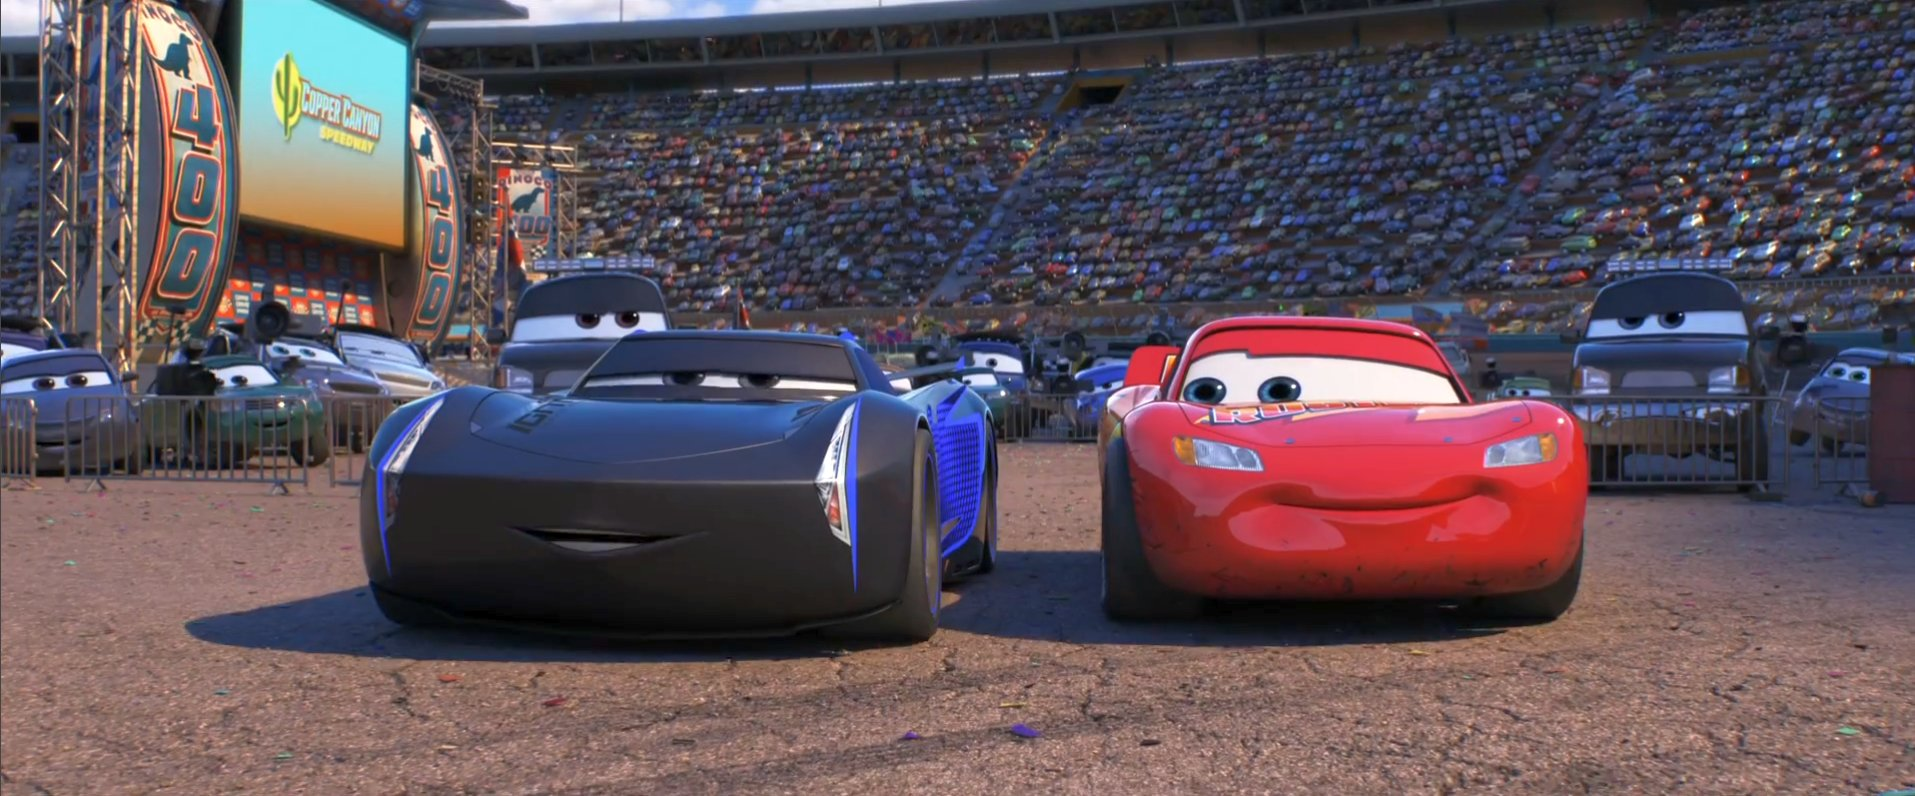 Cars 3 Rivalry Trailer Featuring Lightning McQueen & Jackson Storm